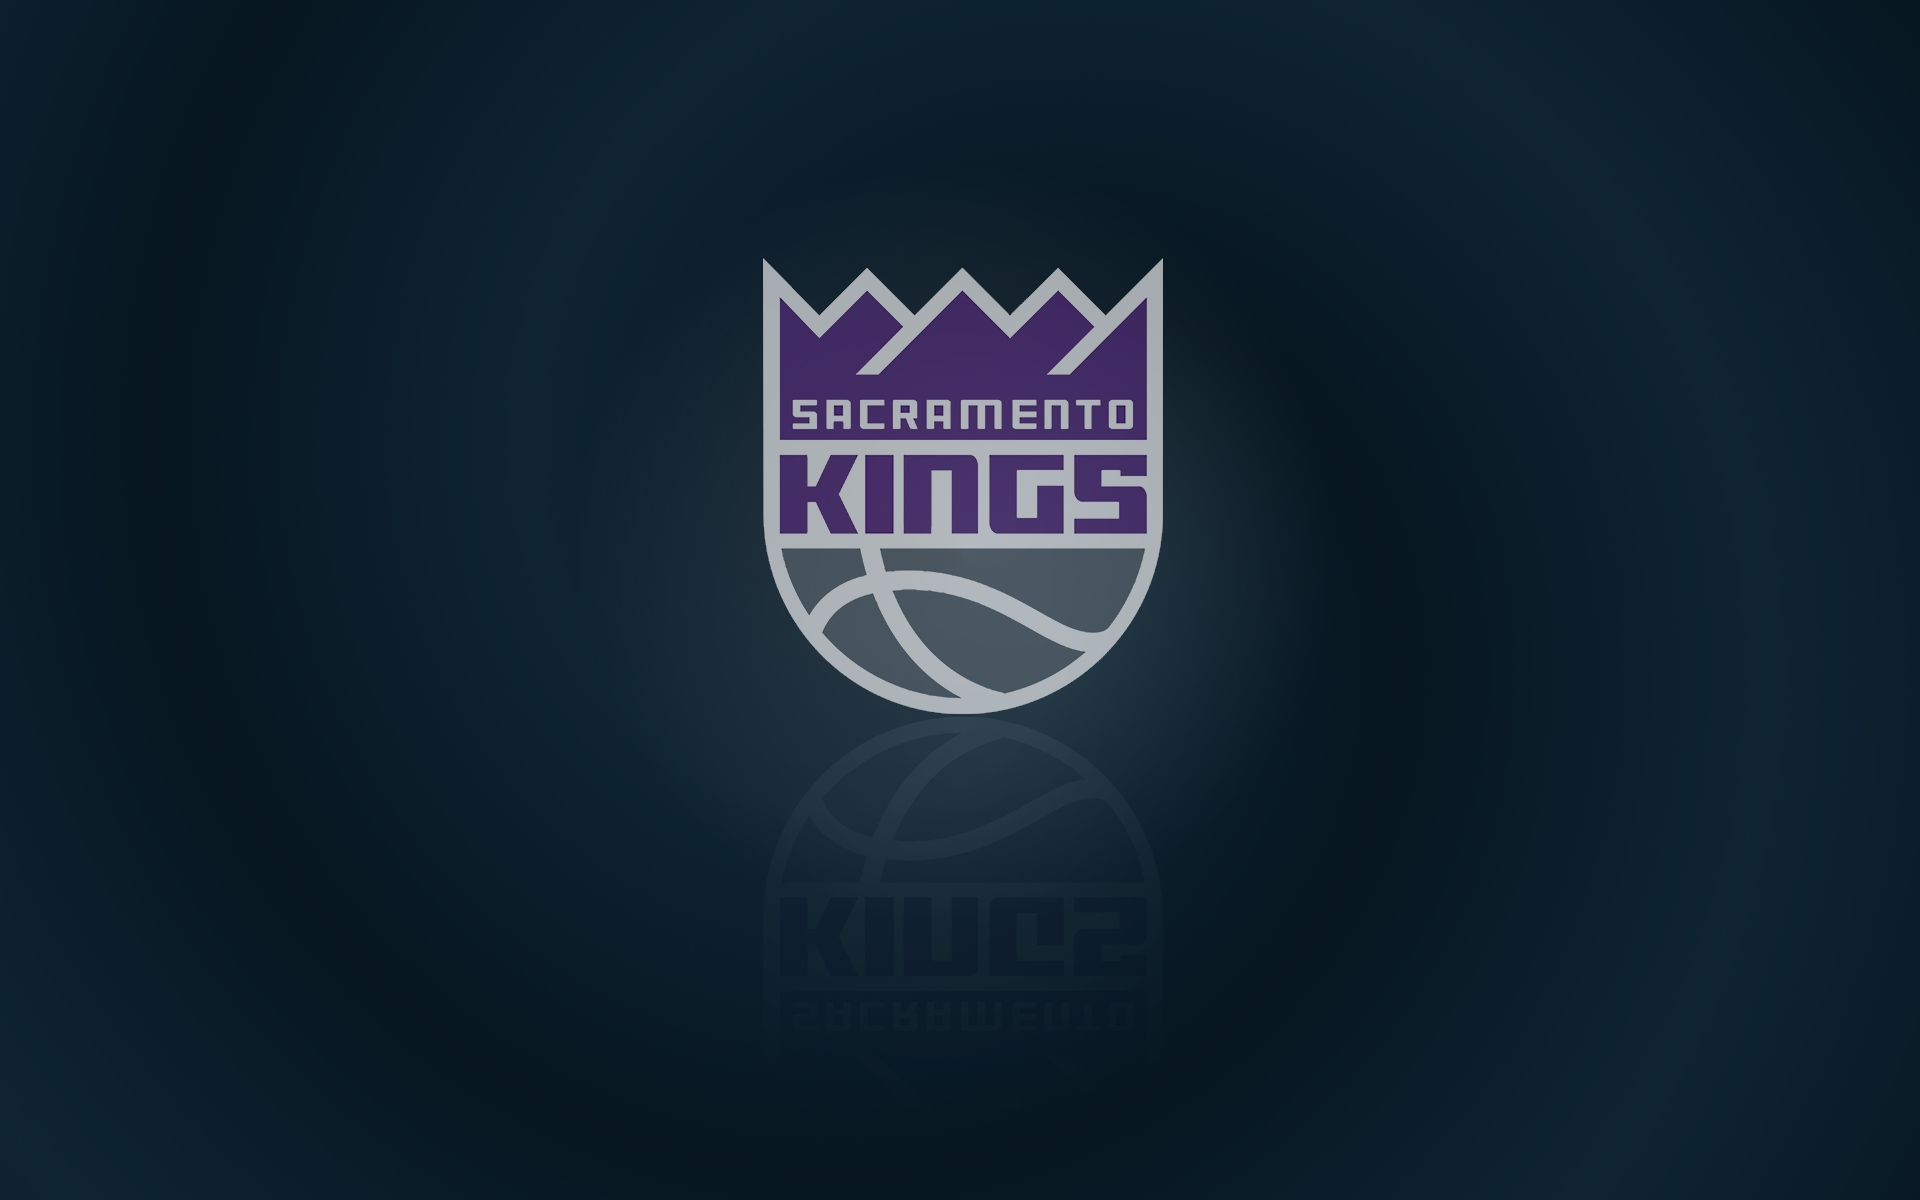 sacramento kings wallpaper and logo 1920x1200 widescreen 16x10